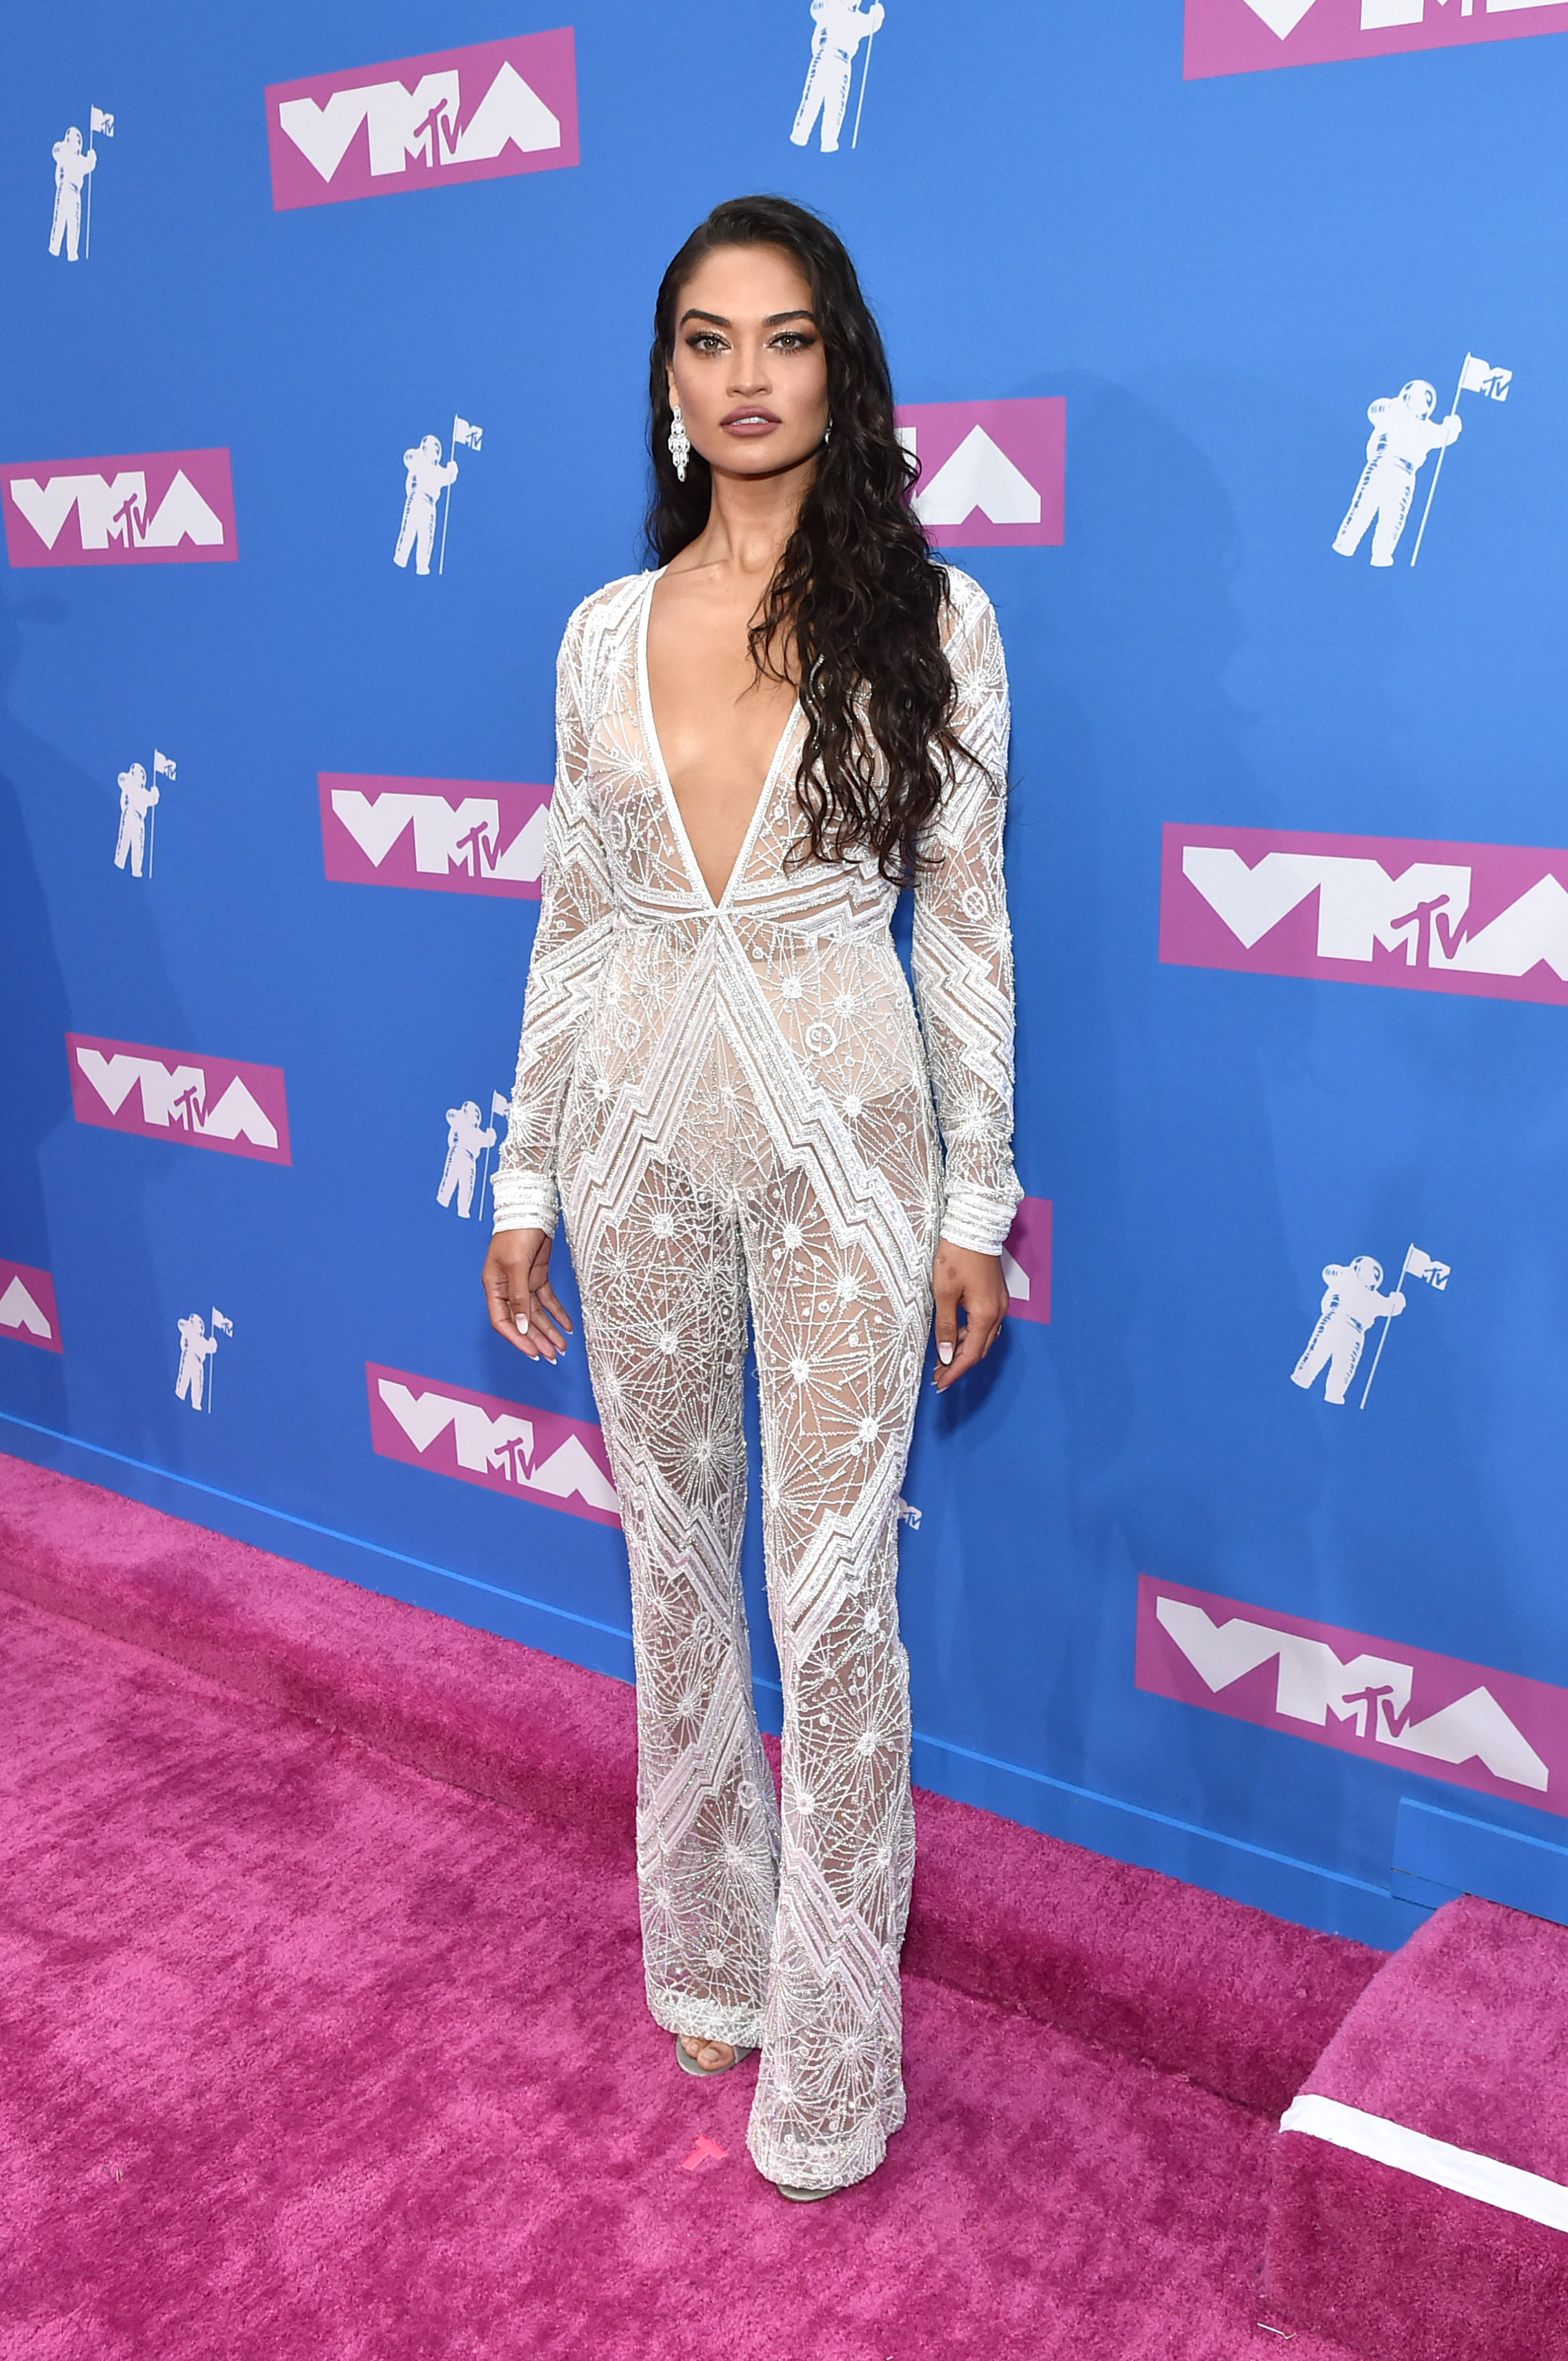 Shanina Shaik attends the 2018 MTV Video Music Awards at Radio City Music Hall on August 20, 2018 in New York City.